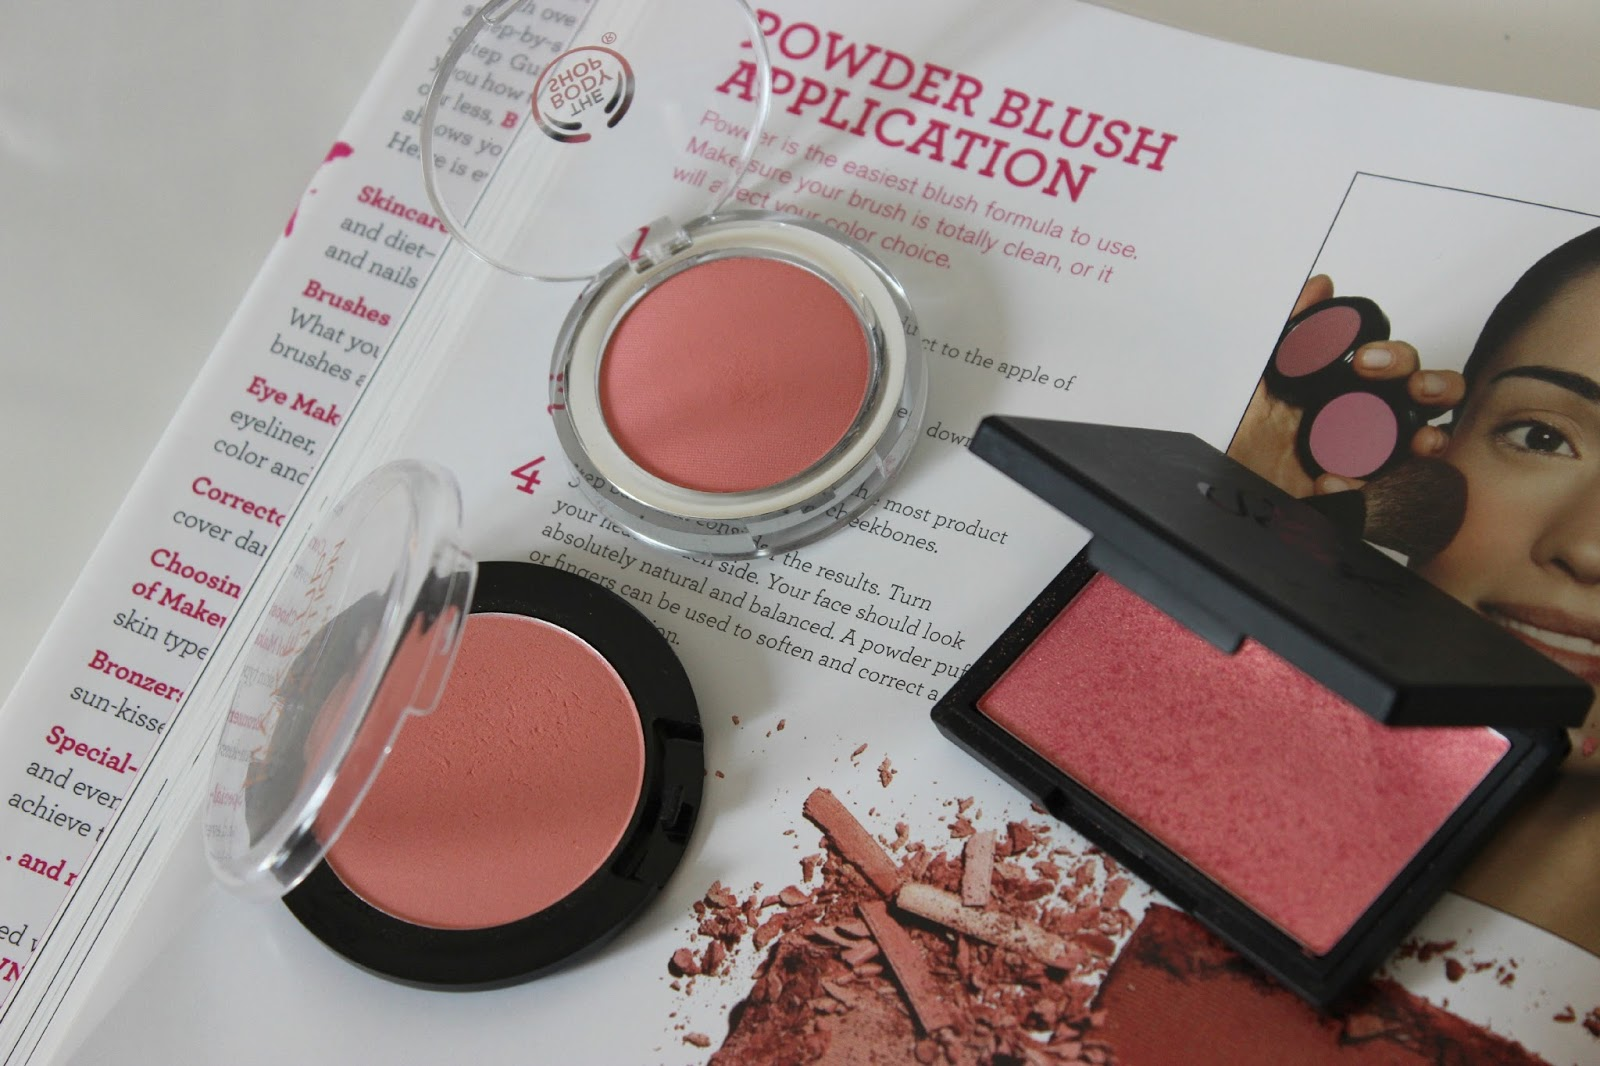 A picture of high-street powder blushes including The Body Shop, Makeup Revolution and Sleek